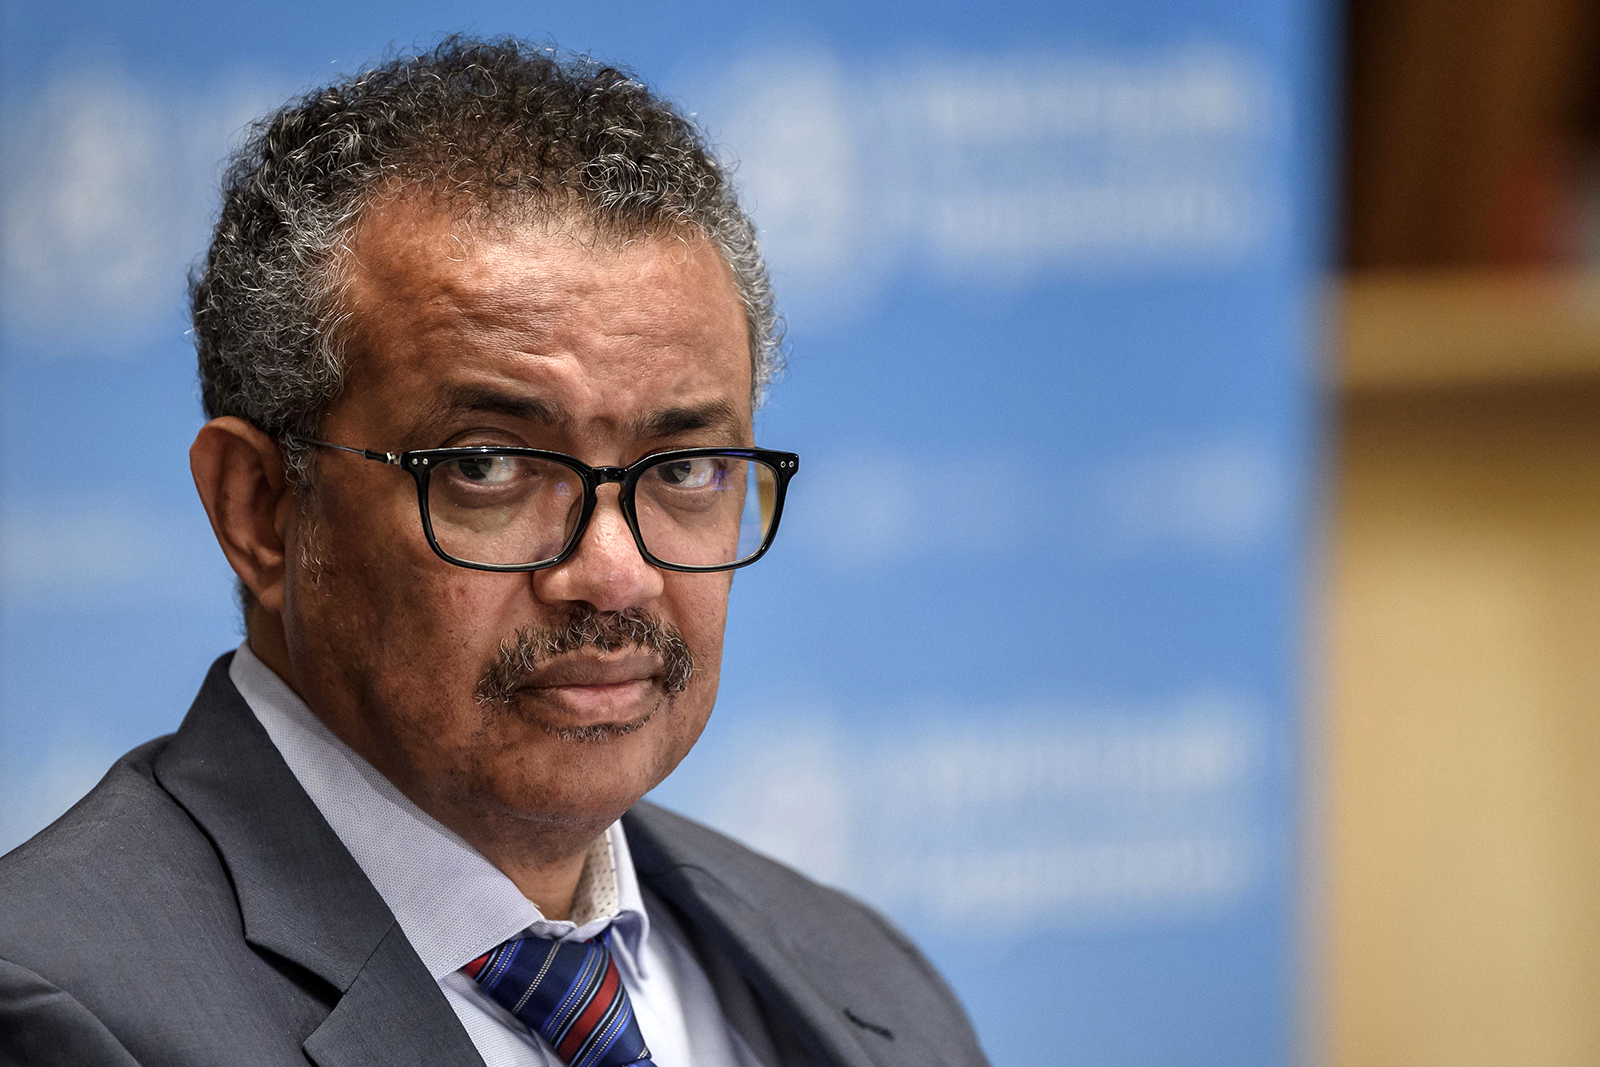 World Health Organization (WHO) Director-General Tedros Adhanom Ghebreyesus attends a press conference at the WHO headquarters in Geneva on July 3.